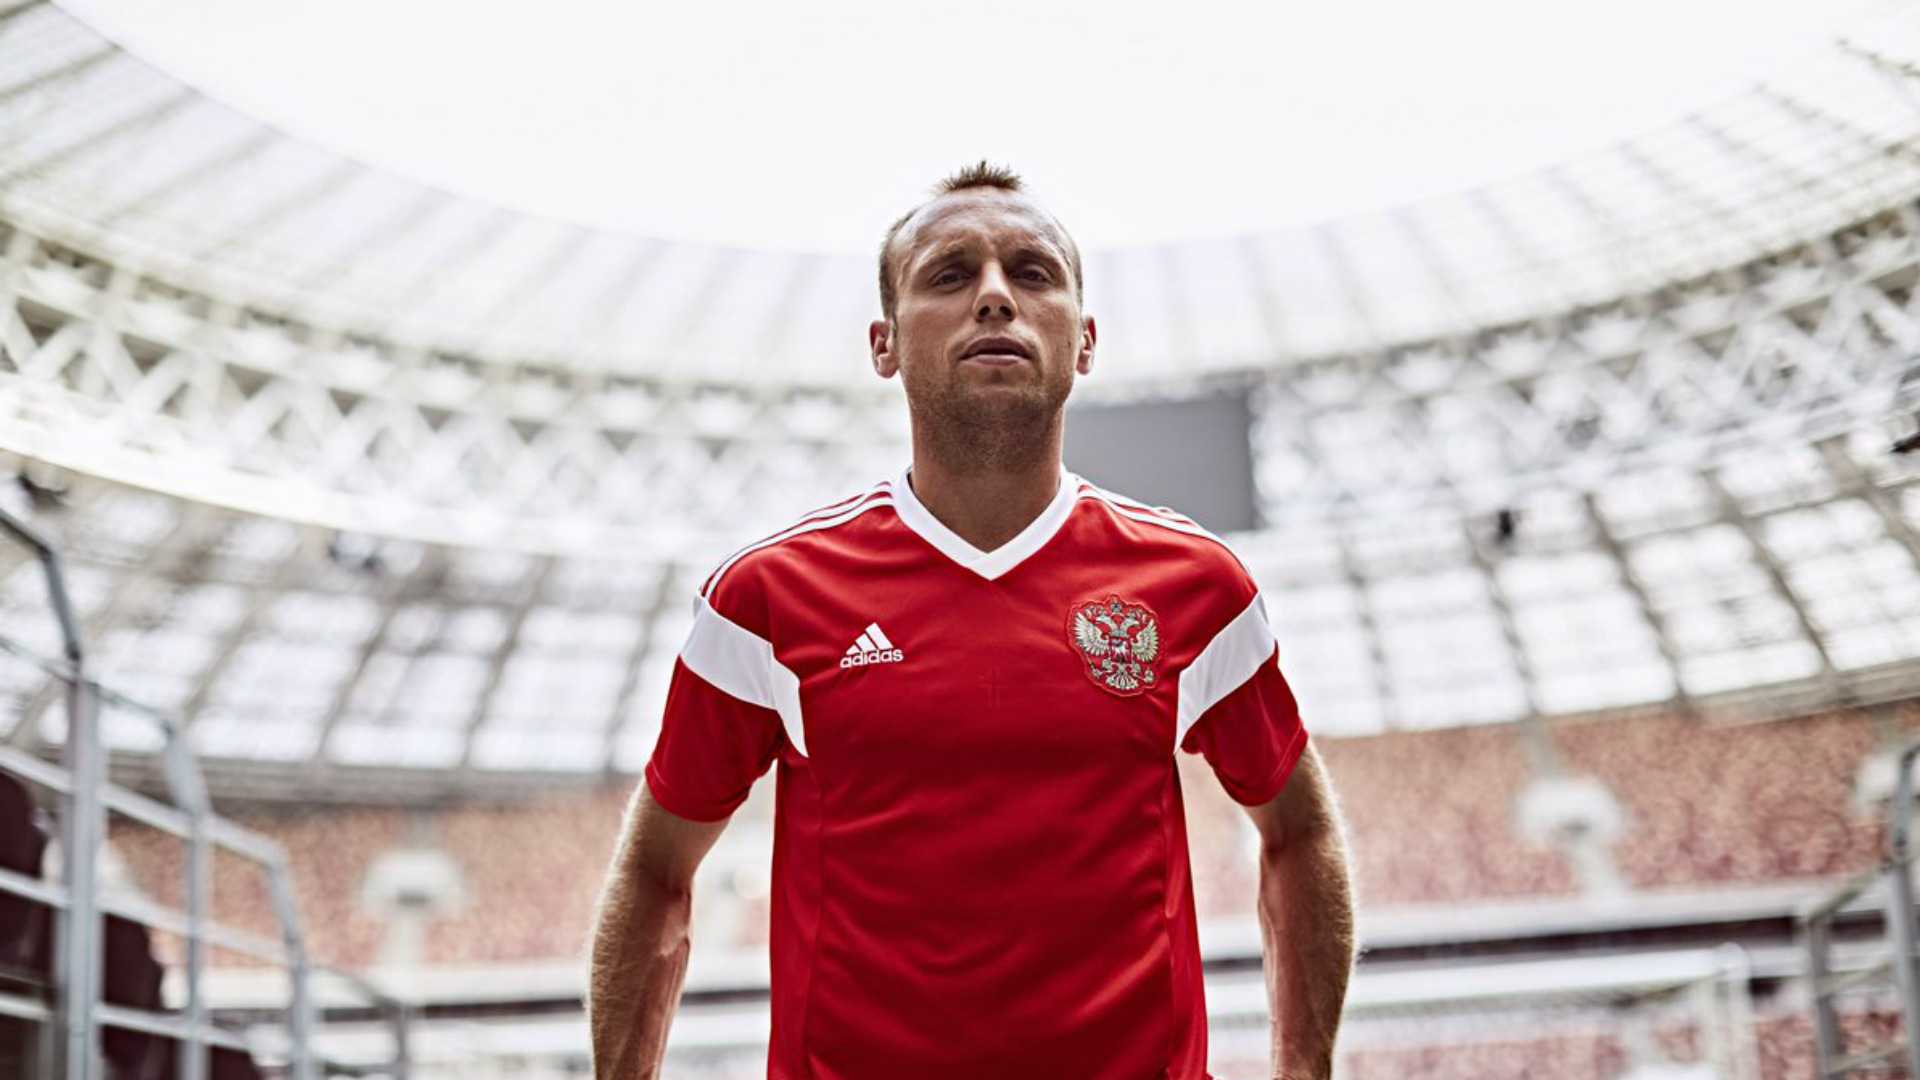 d35779fd1 World Cup 2018 kit Russia home